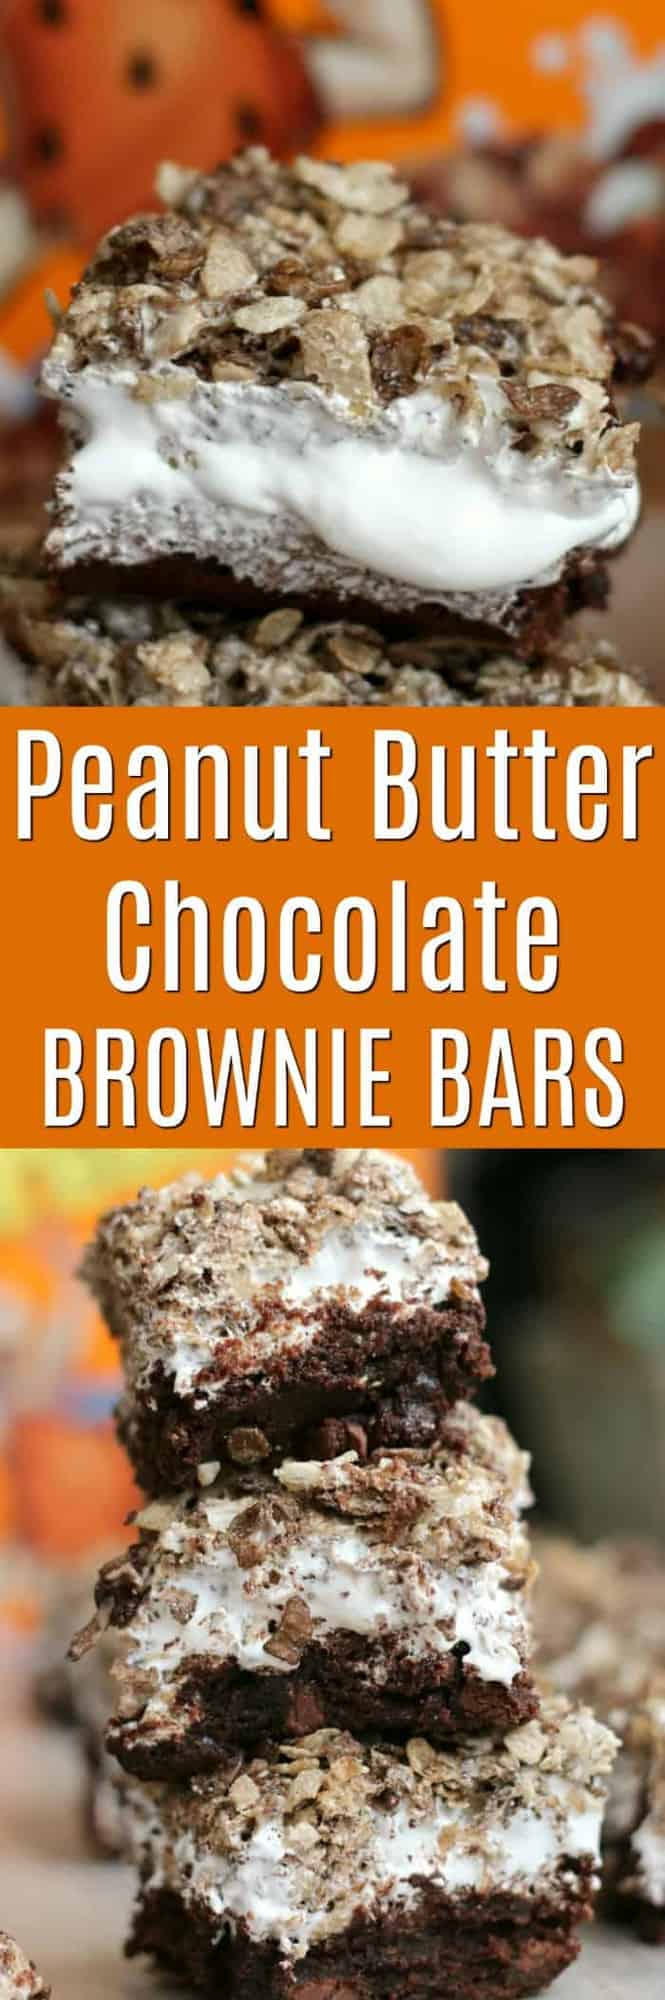 Peanut Butter Chocolate Brownie Bars